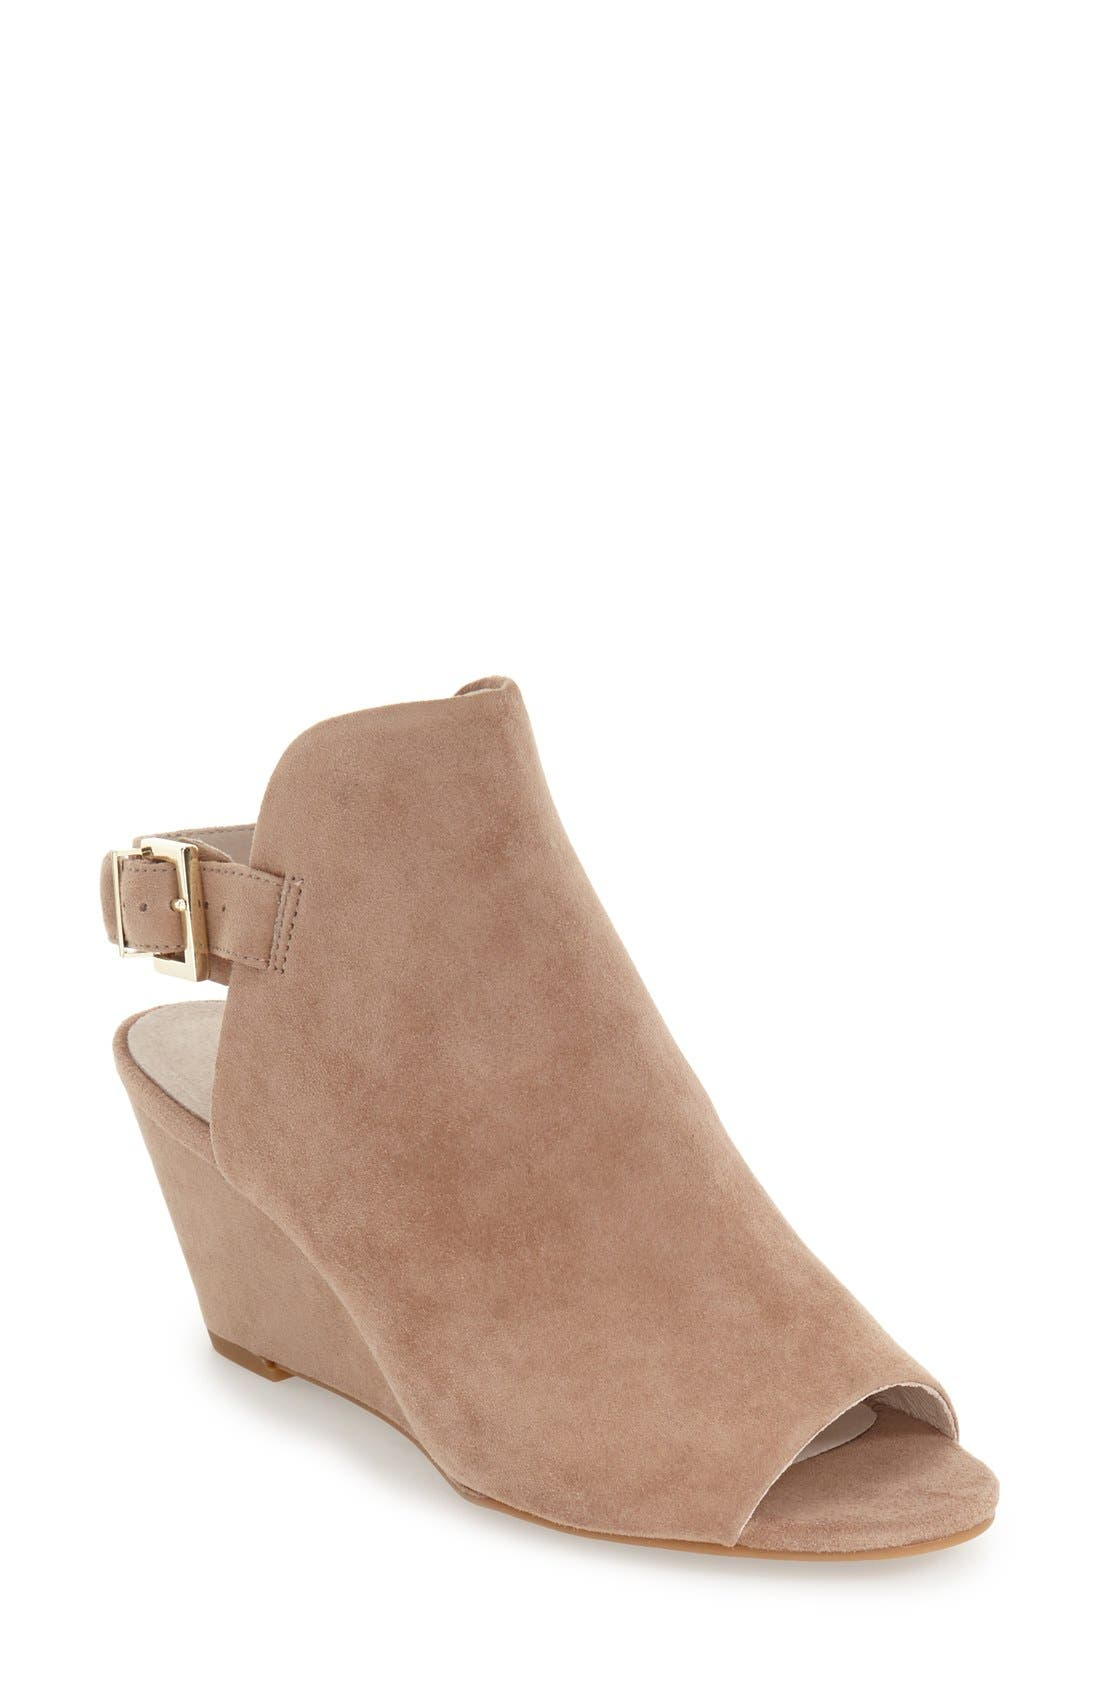 Alternate Image 1 Selected - Kenneth Cole New York 'Dana' Wedge Sandal (Women)